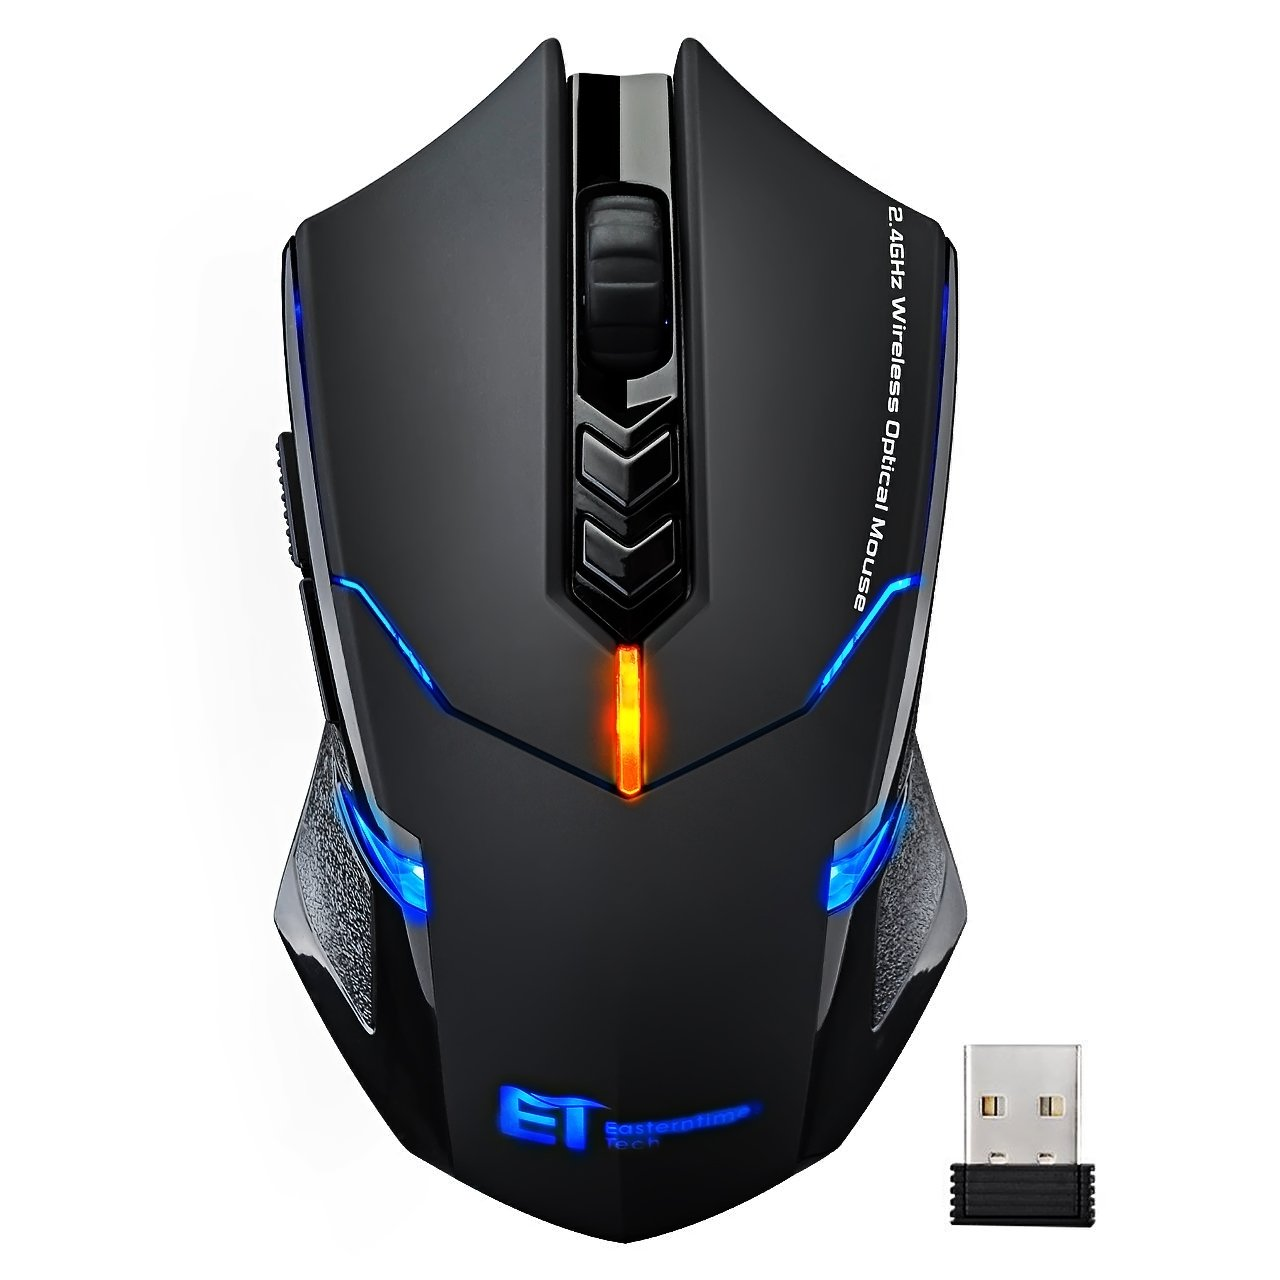 VicTsing Wireless Gaming Mouse with Unique Silent Click, Breathing Backlit, 2 Programmable Side Buttons, 2400 DPI, Ergonomic Grips, 7-Button Design- Black